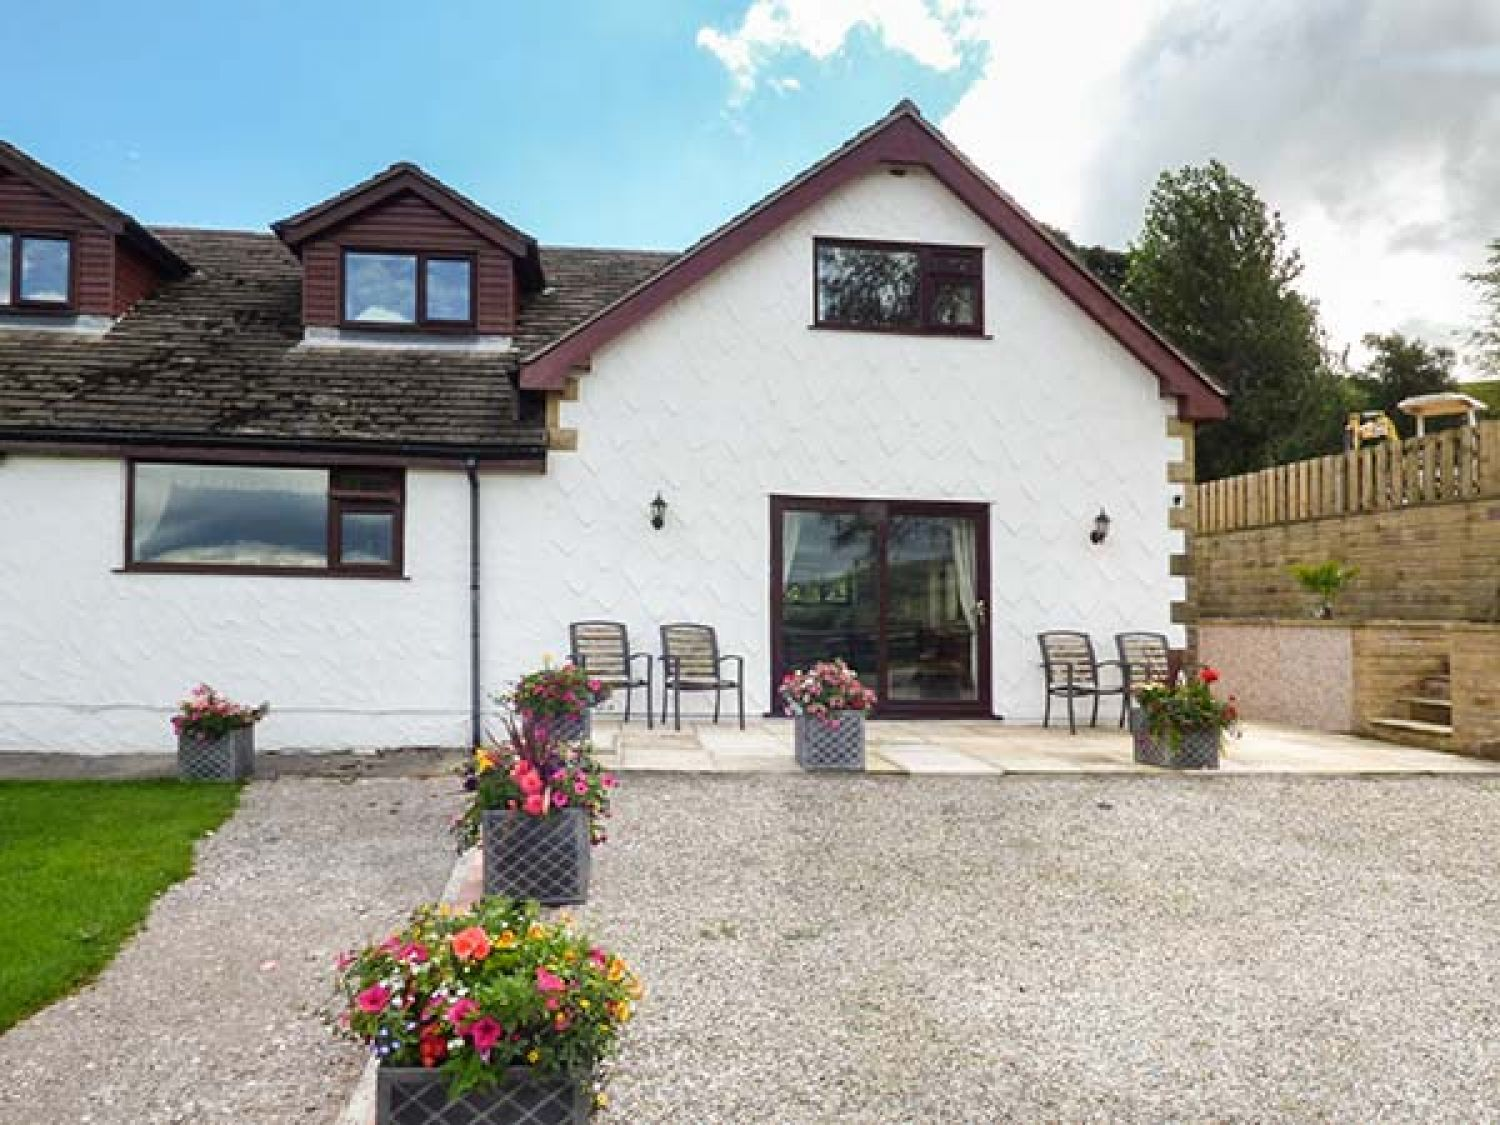 Valley View in Combs near Buxton - sleeps 4 people